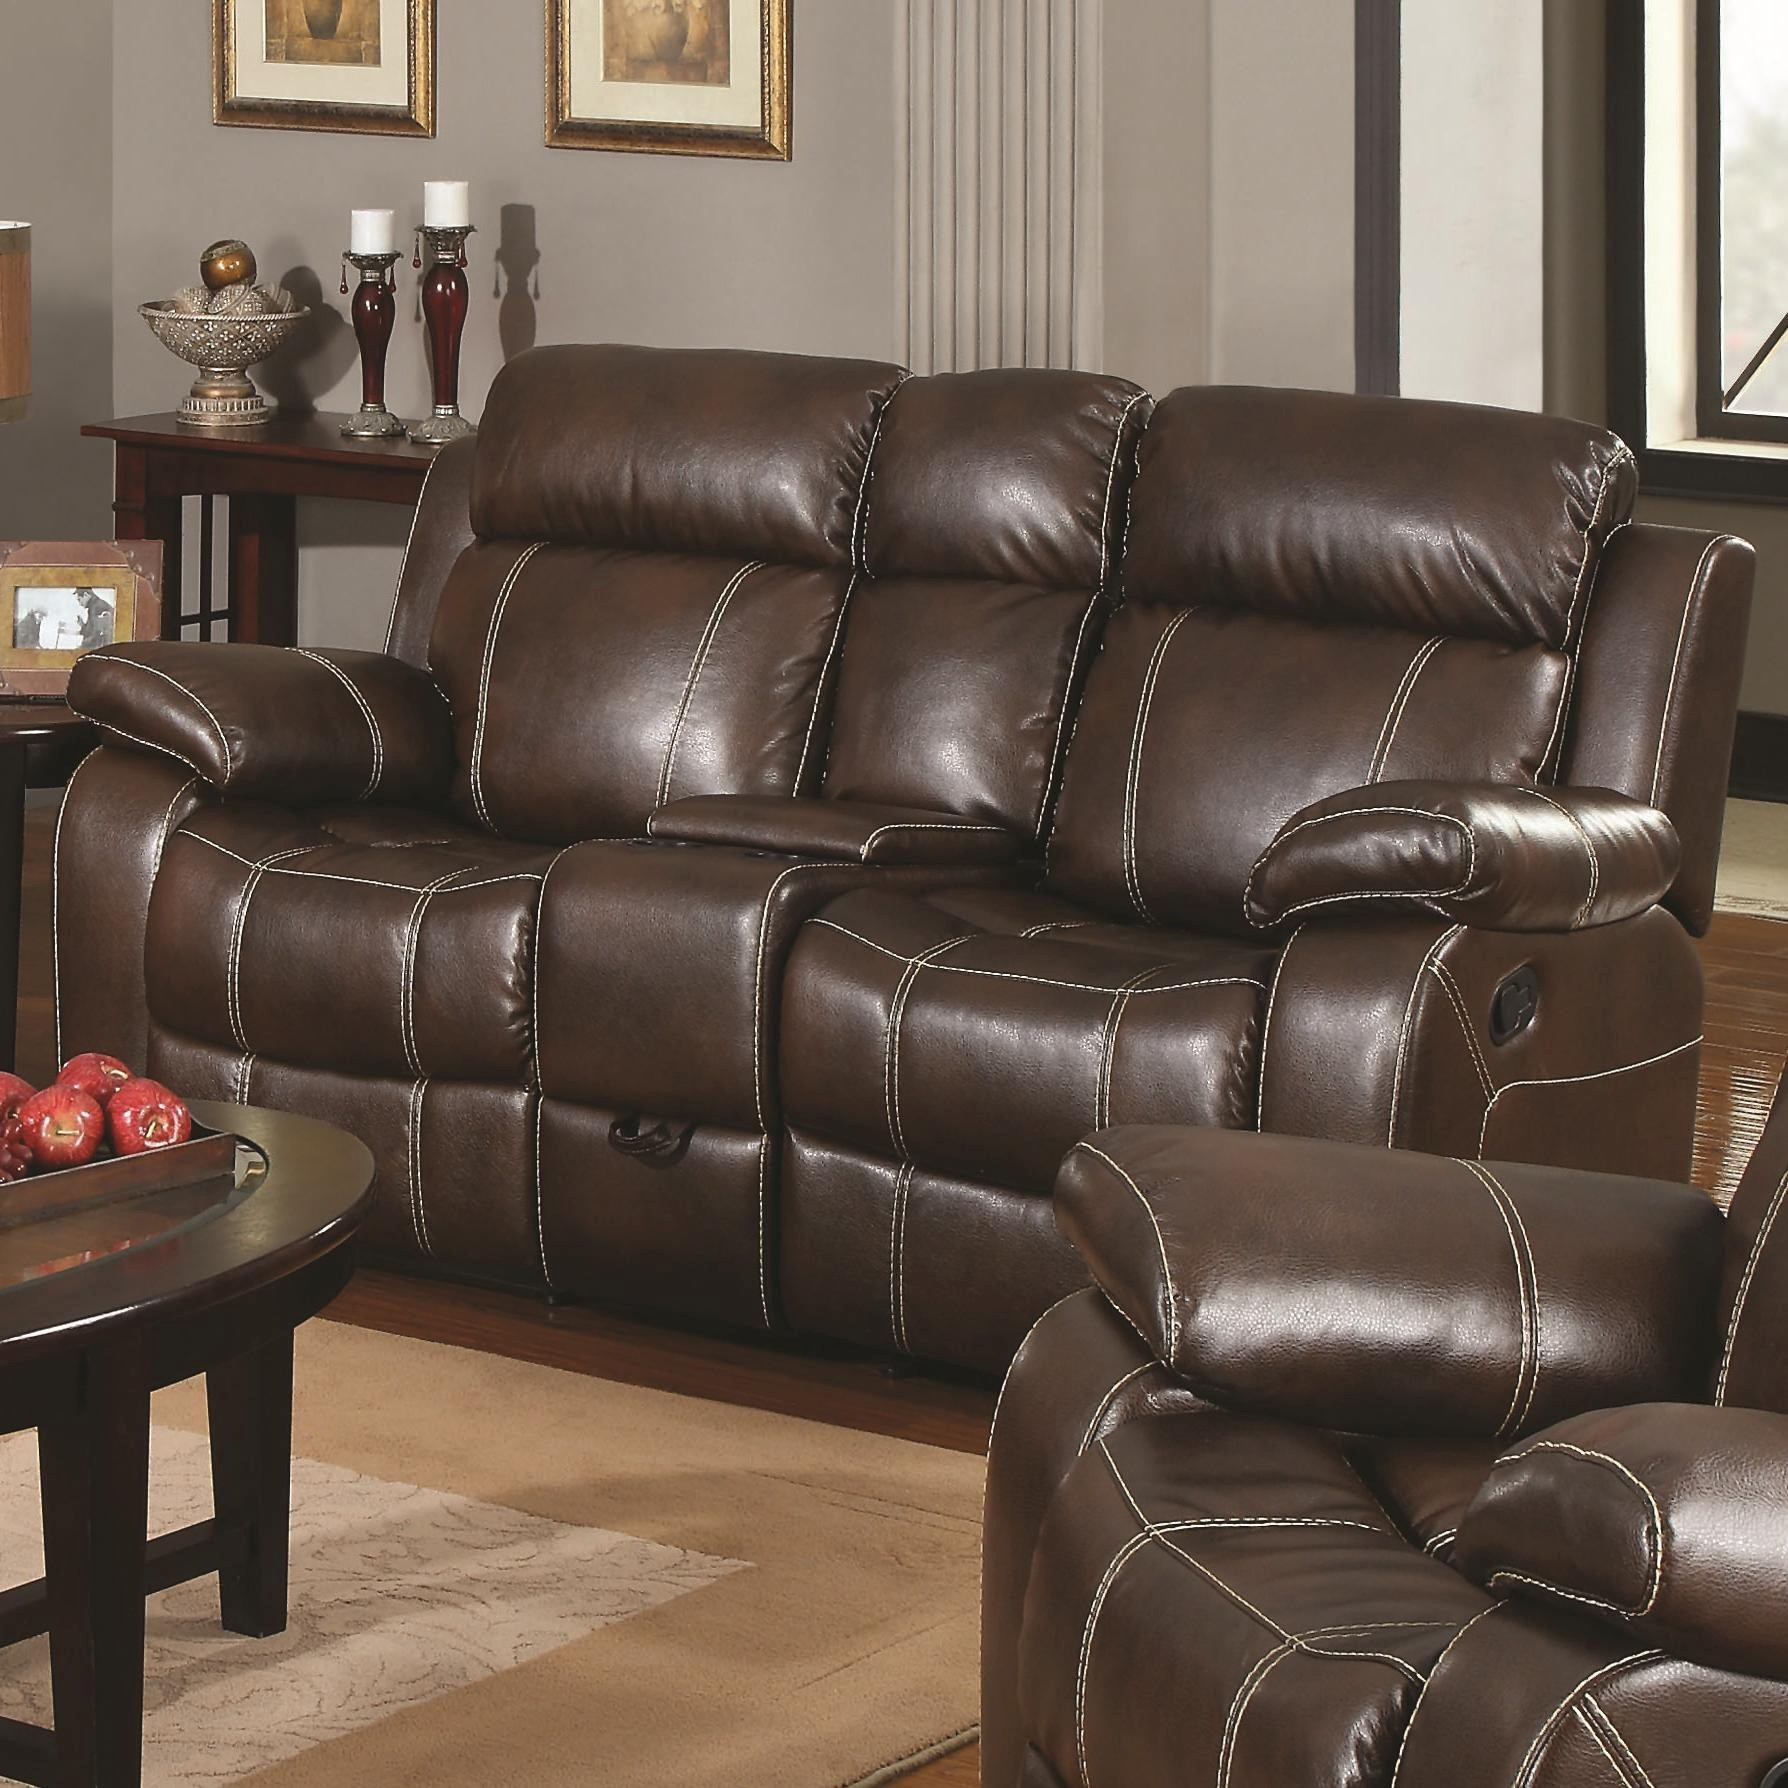 Incredible Leather Sofa And Loveseat Set Wallpaper Modern Design Ideas